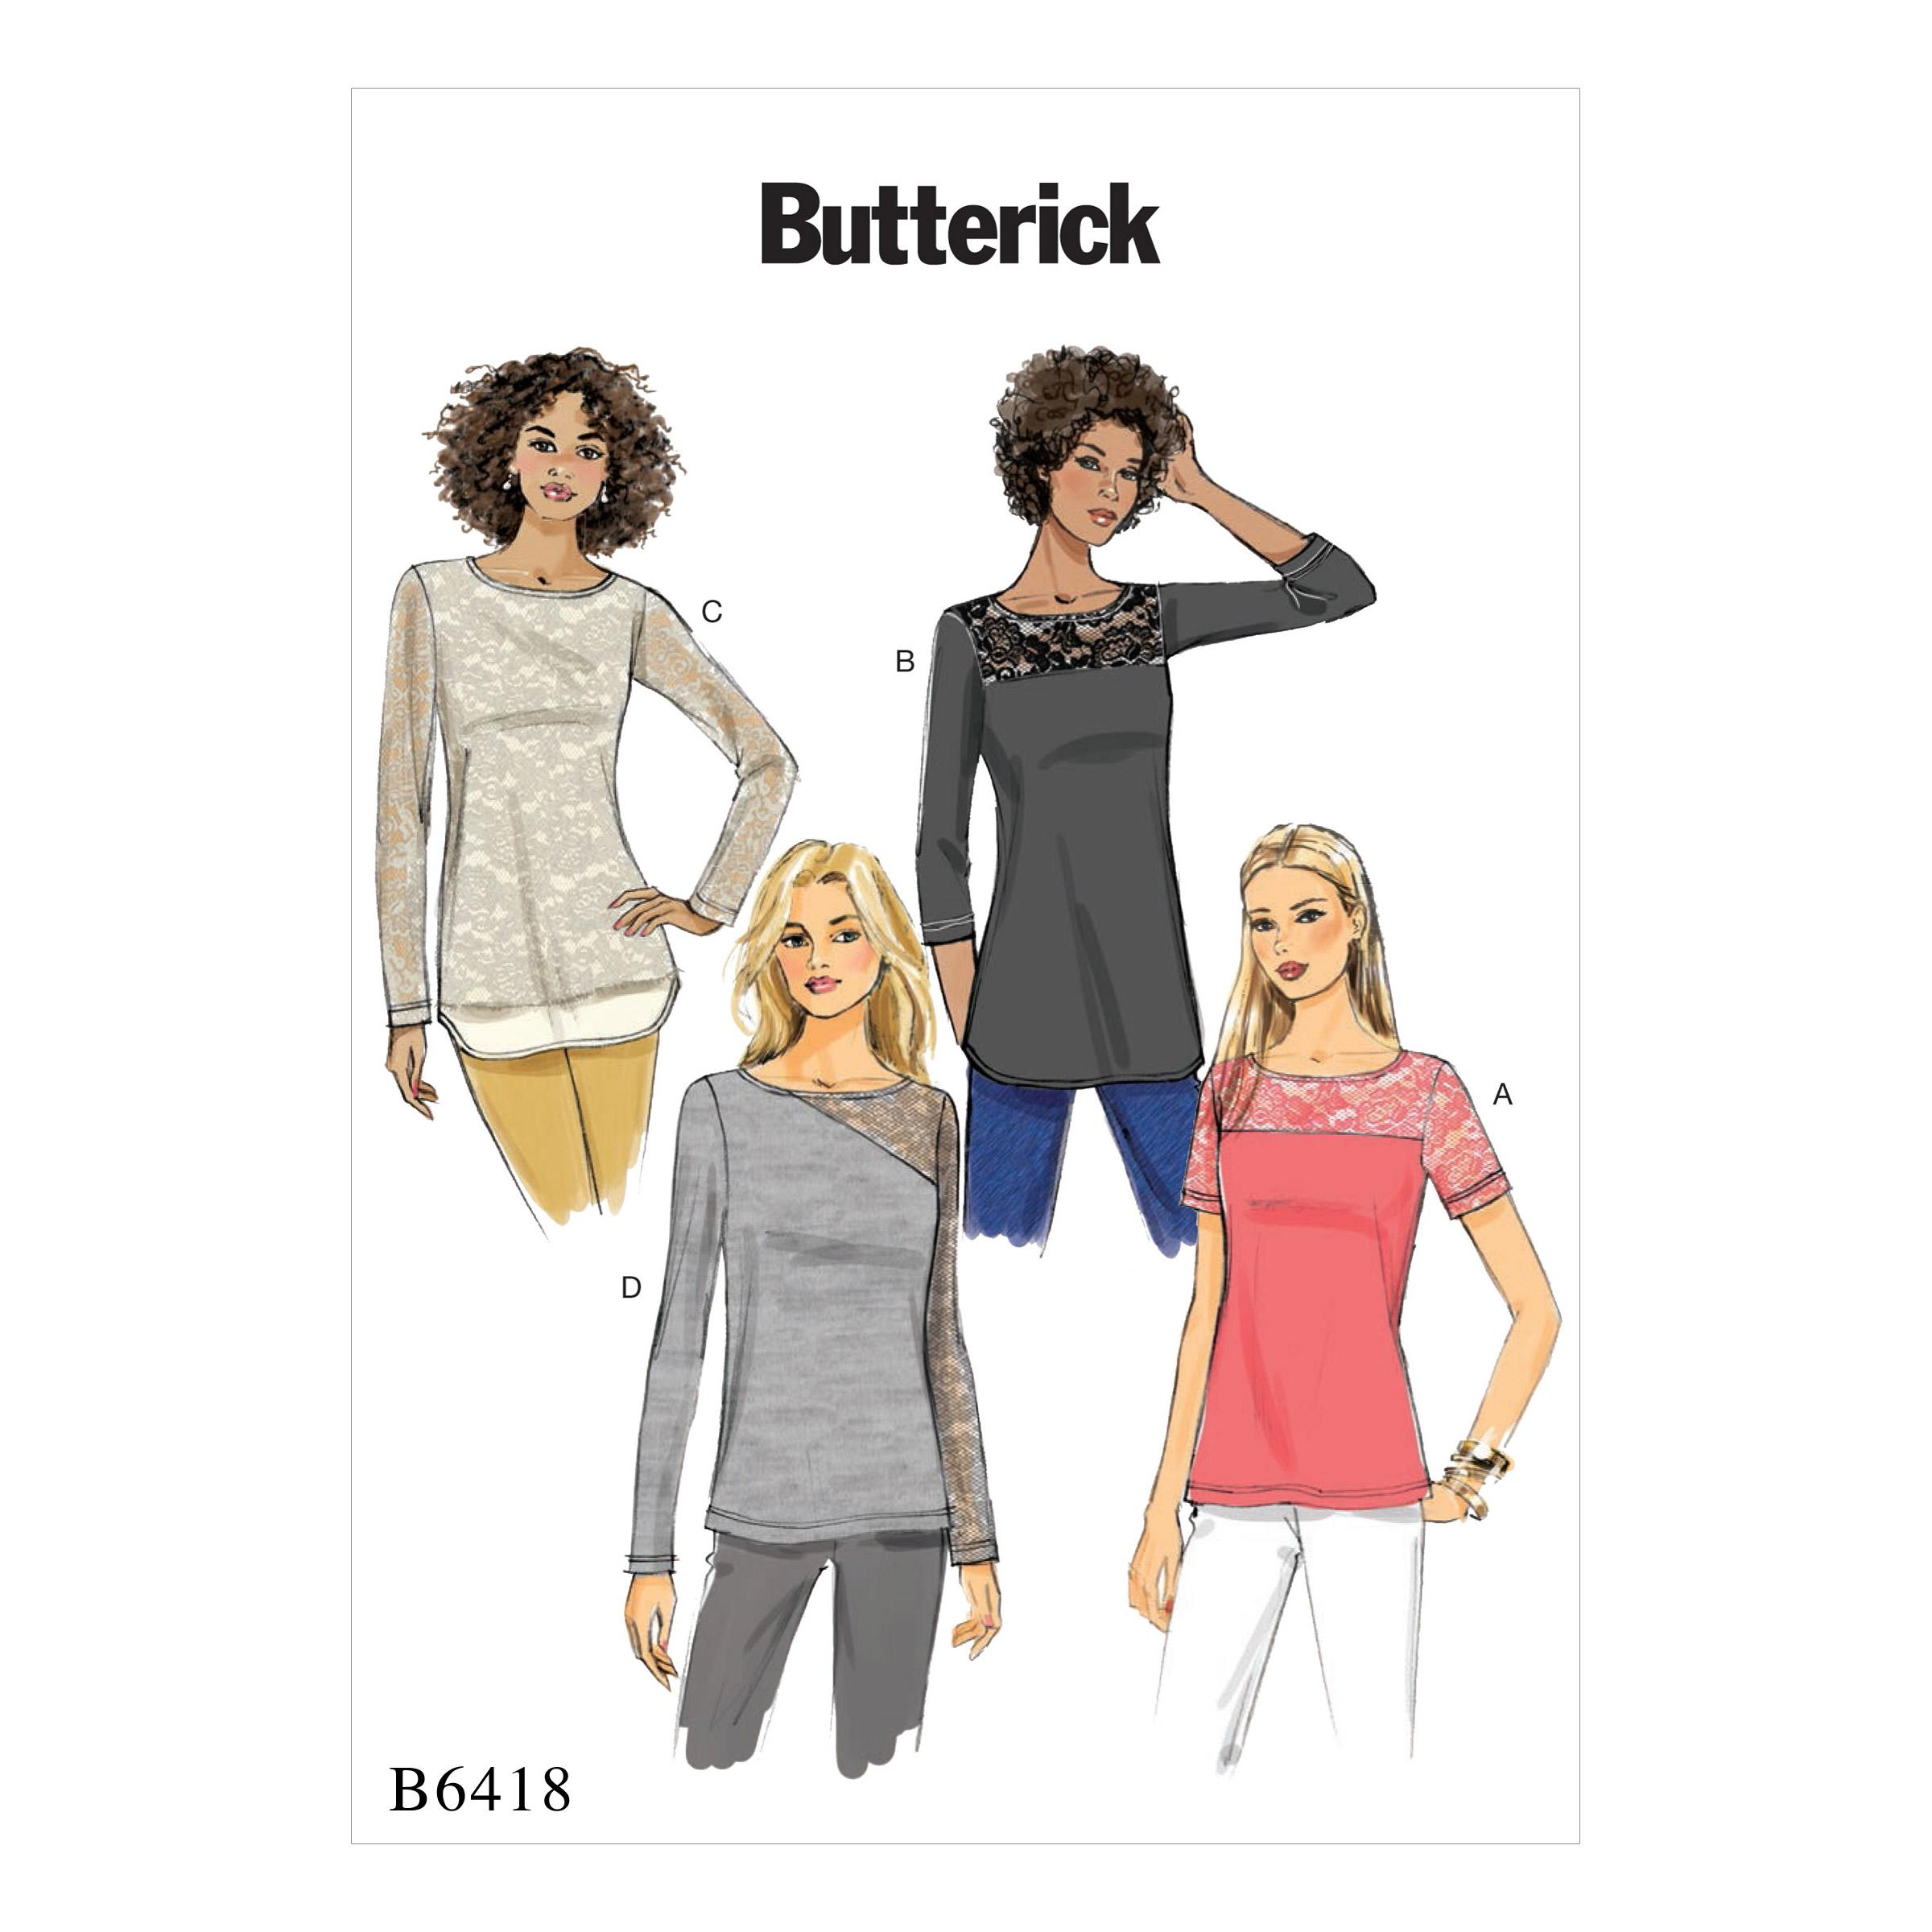 Butterick B6418 Misses' Knit, Lace-Detail Tops